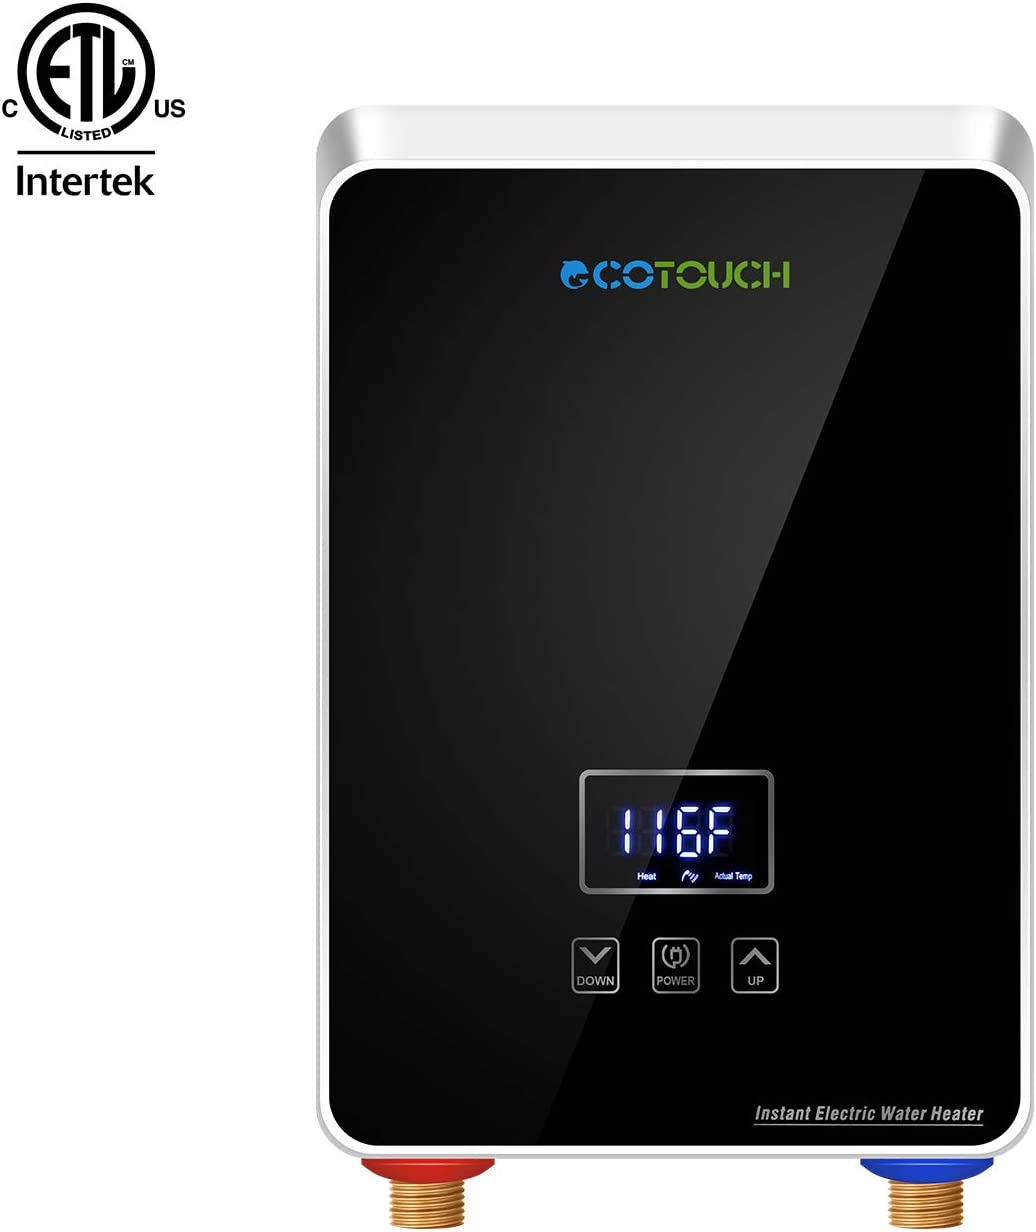 ECOTOUCH Tankless Water Heater Electric, 1.5 GPM On Demand Hot Water Heater Digital Dispaly Energy Efficient 5.5kW at 240V, Black